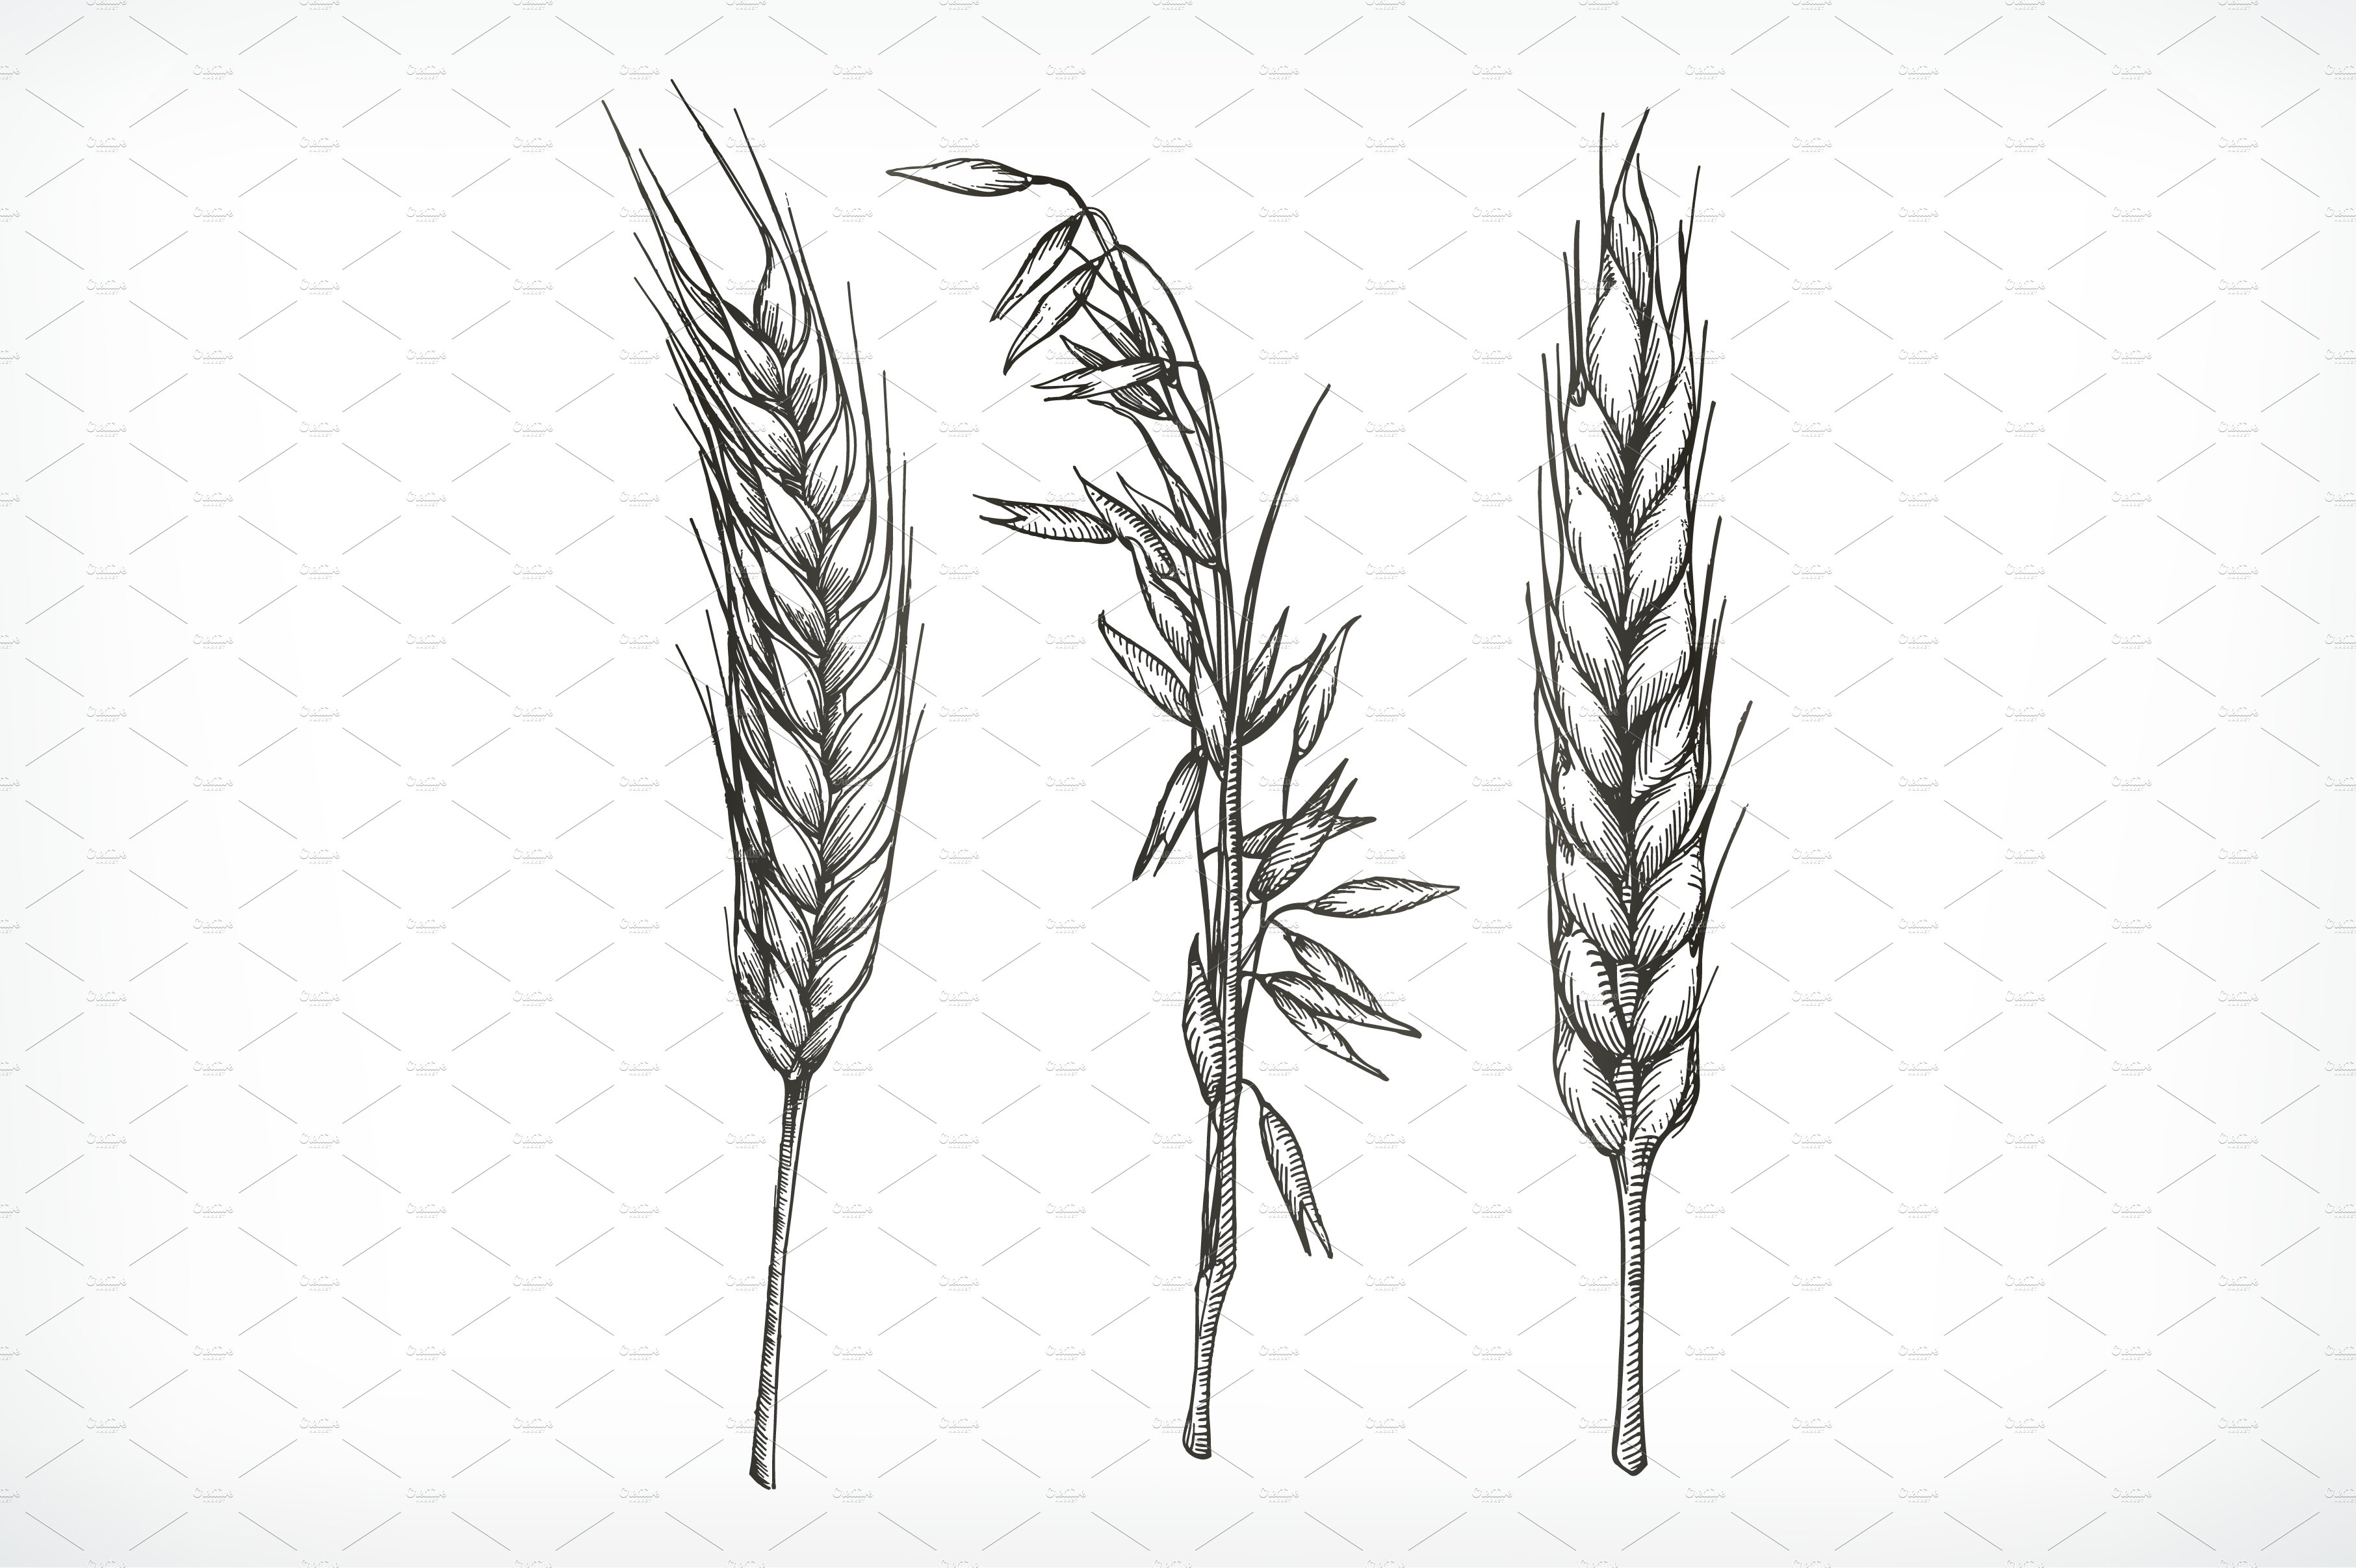 Drawing Lines With Css : Crops wheat and oat sketches illustrations creative